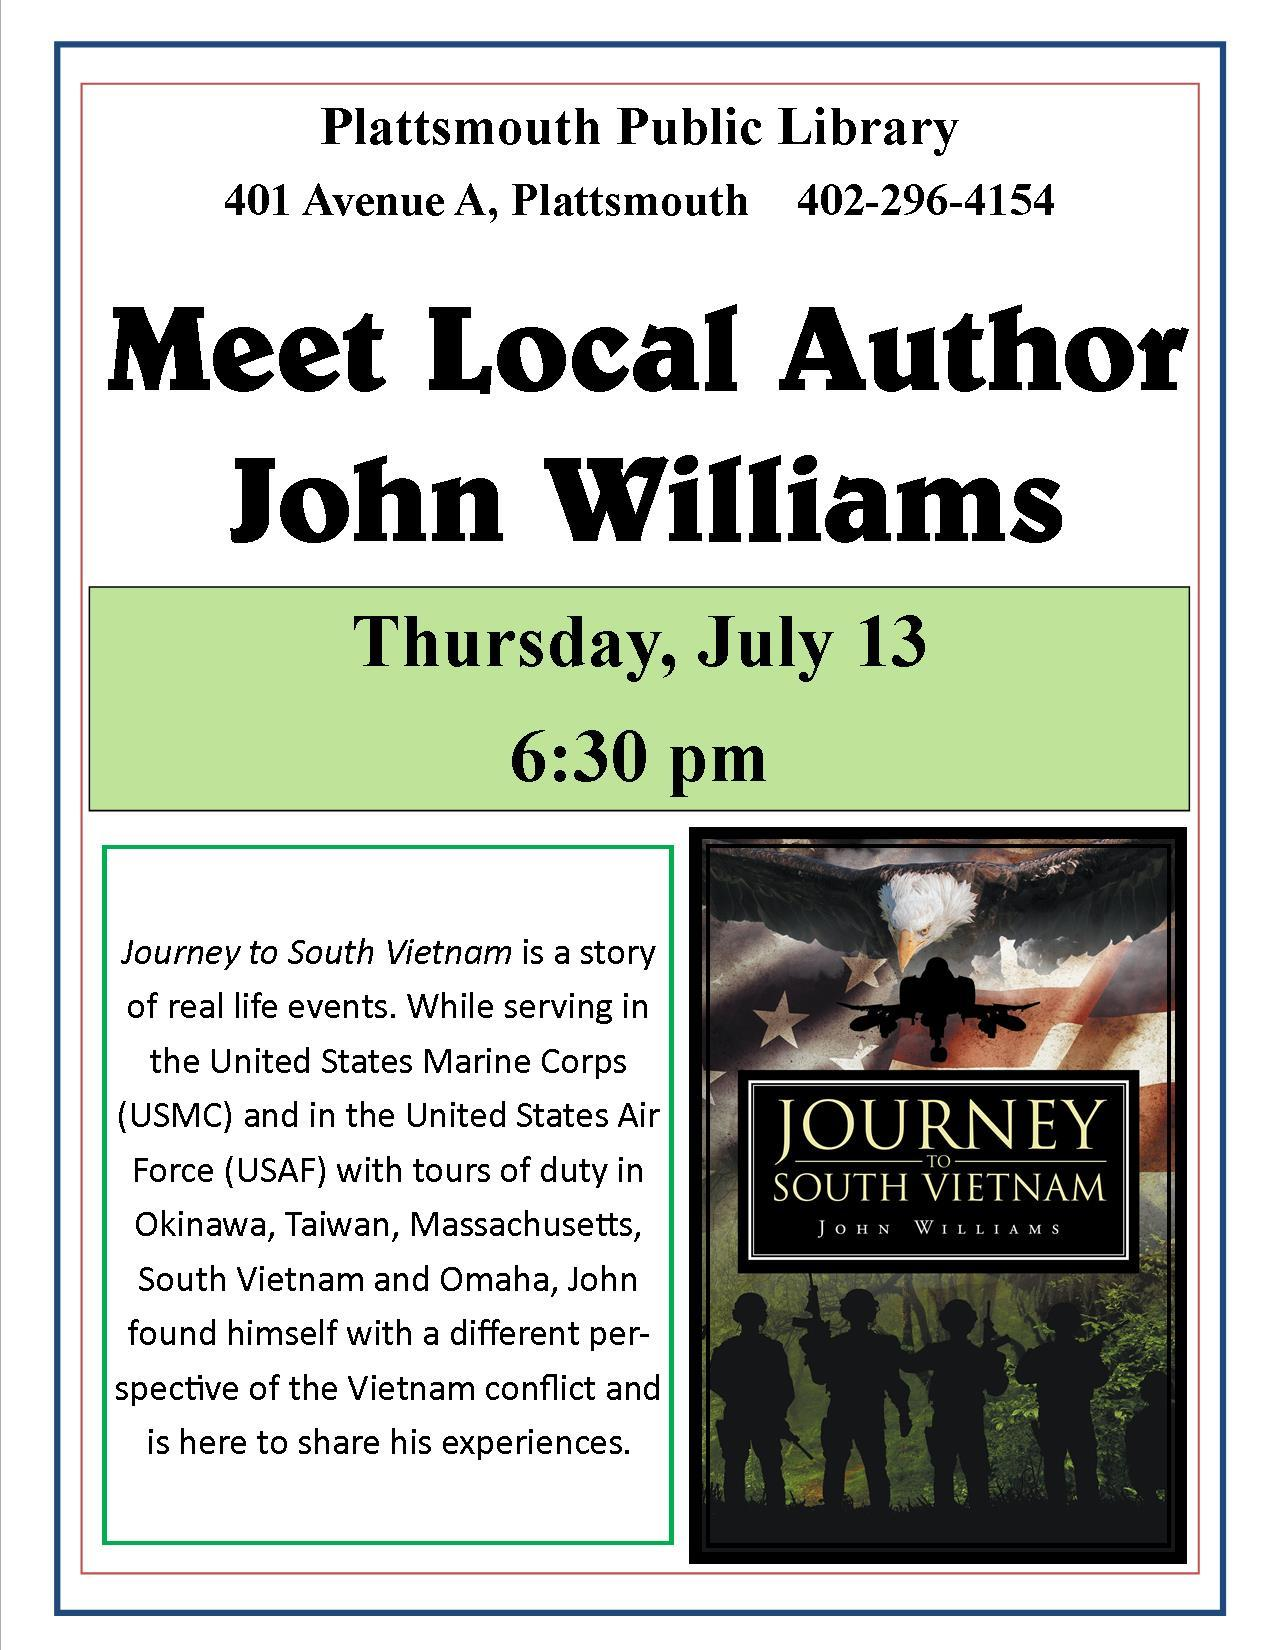 John Williams local author